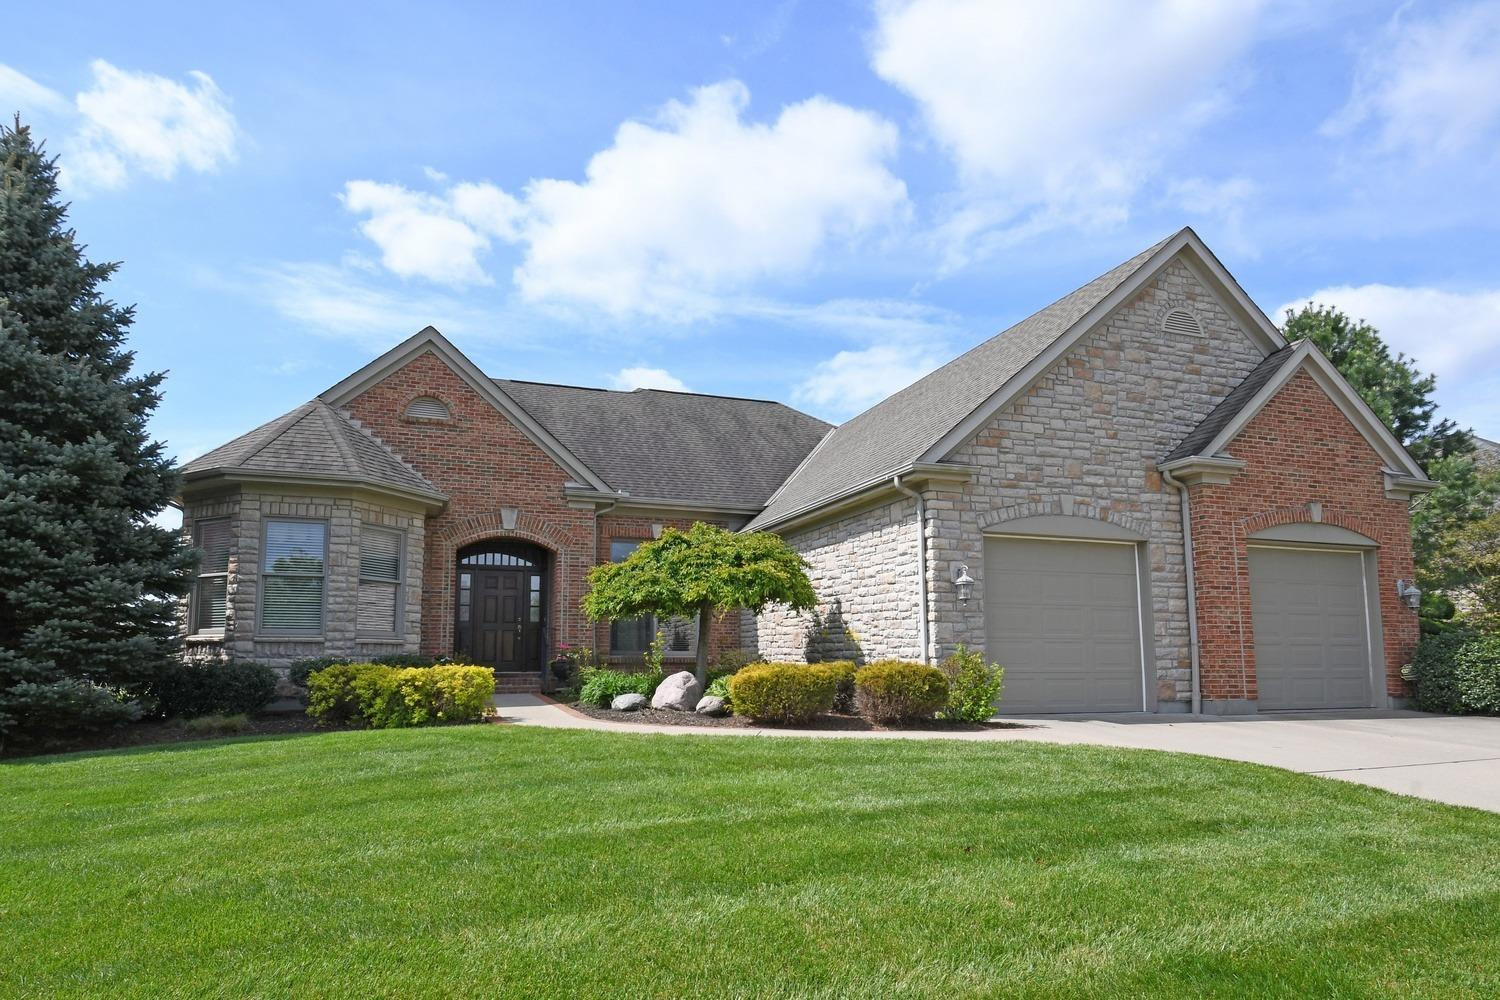 Property for sale at 11785 Winthrop Lane, Sycamore Twp,  Ohio 45249